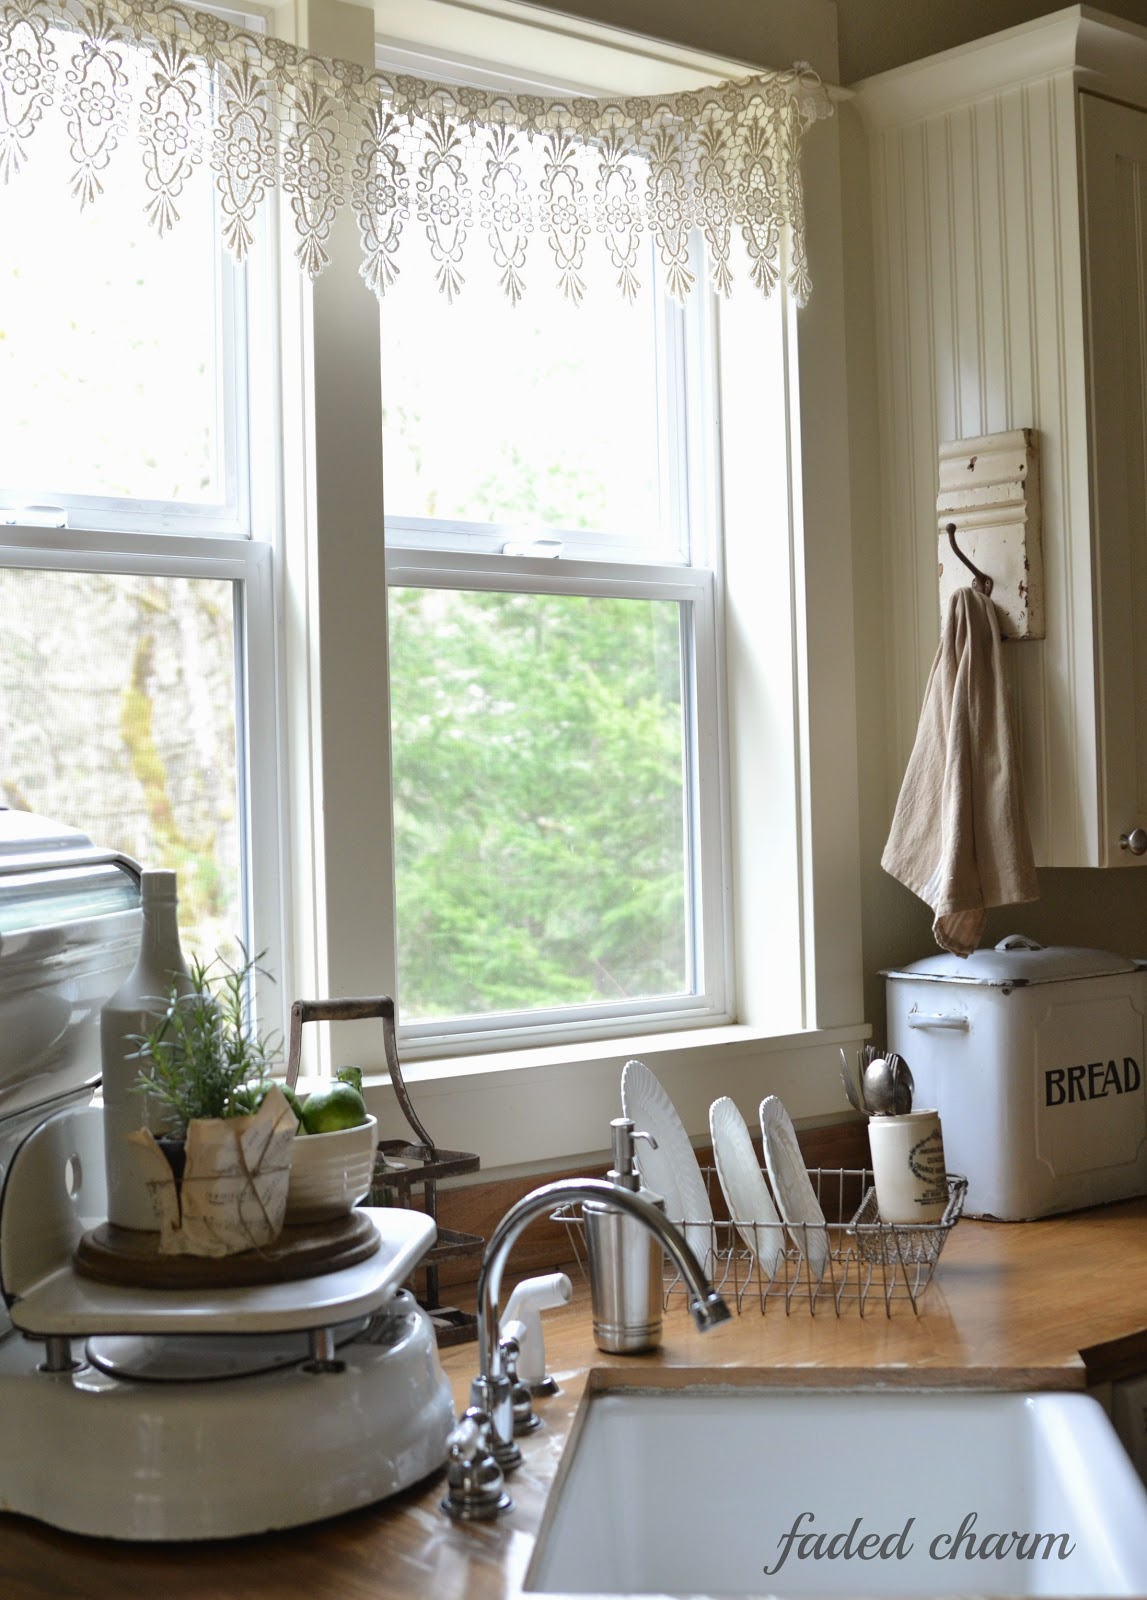 Salvaged kitchen decorating ideas from crates to sawhorsesFunky Junk Interiors